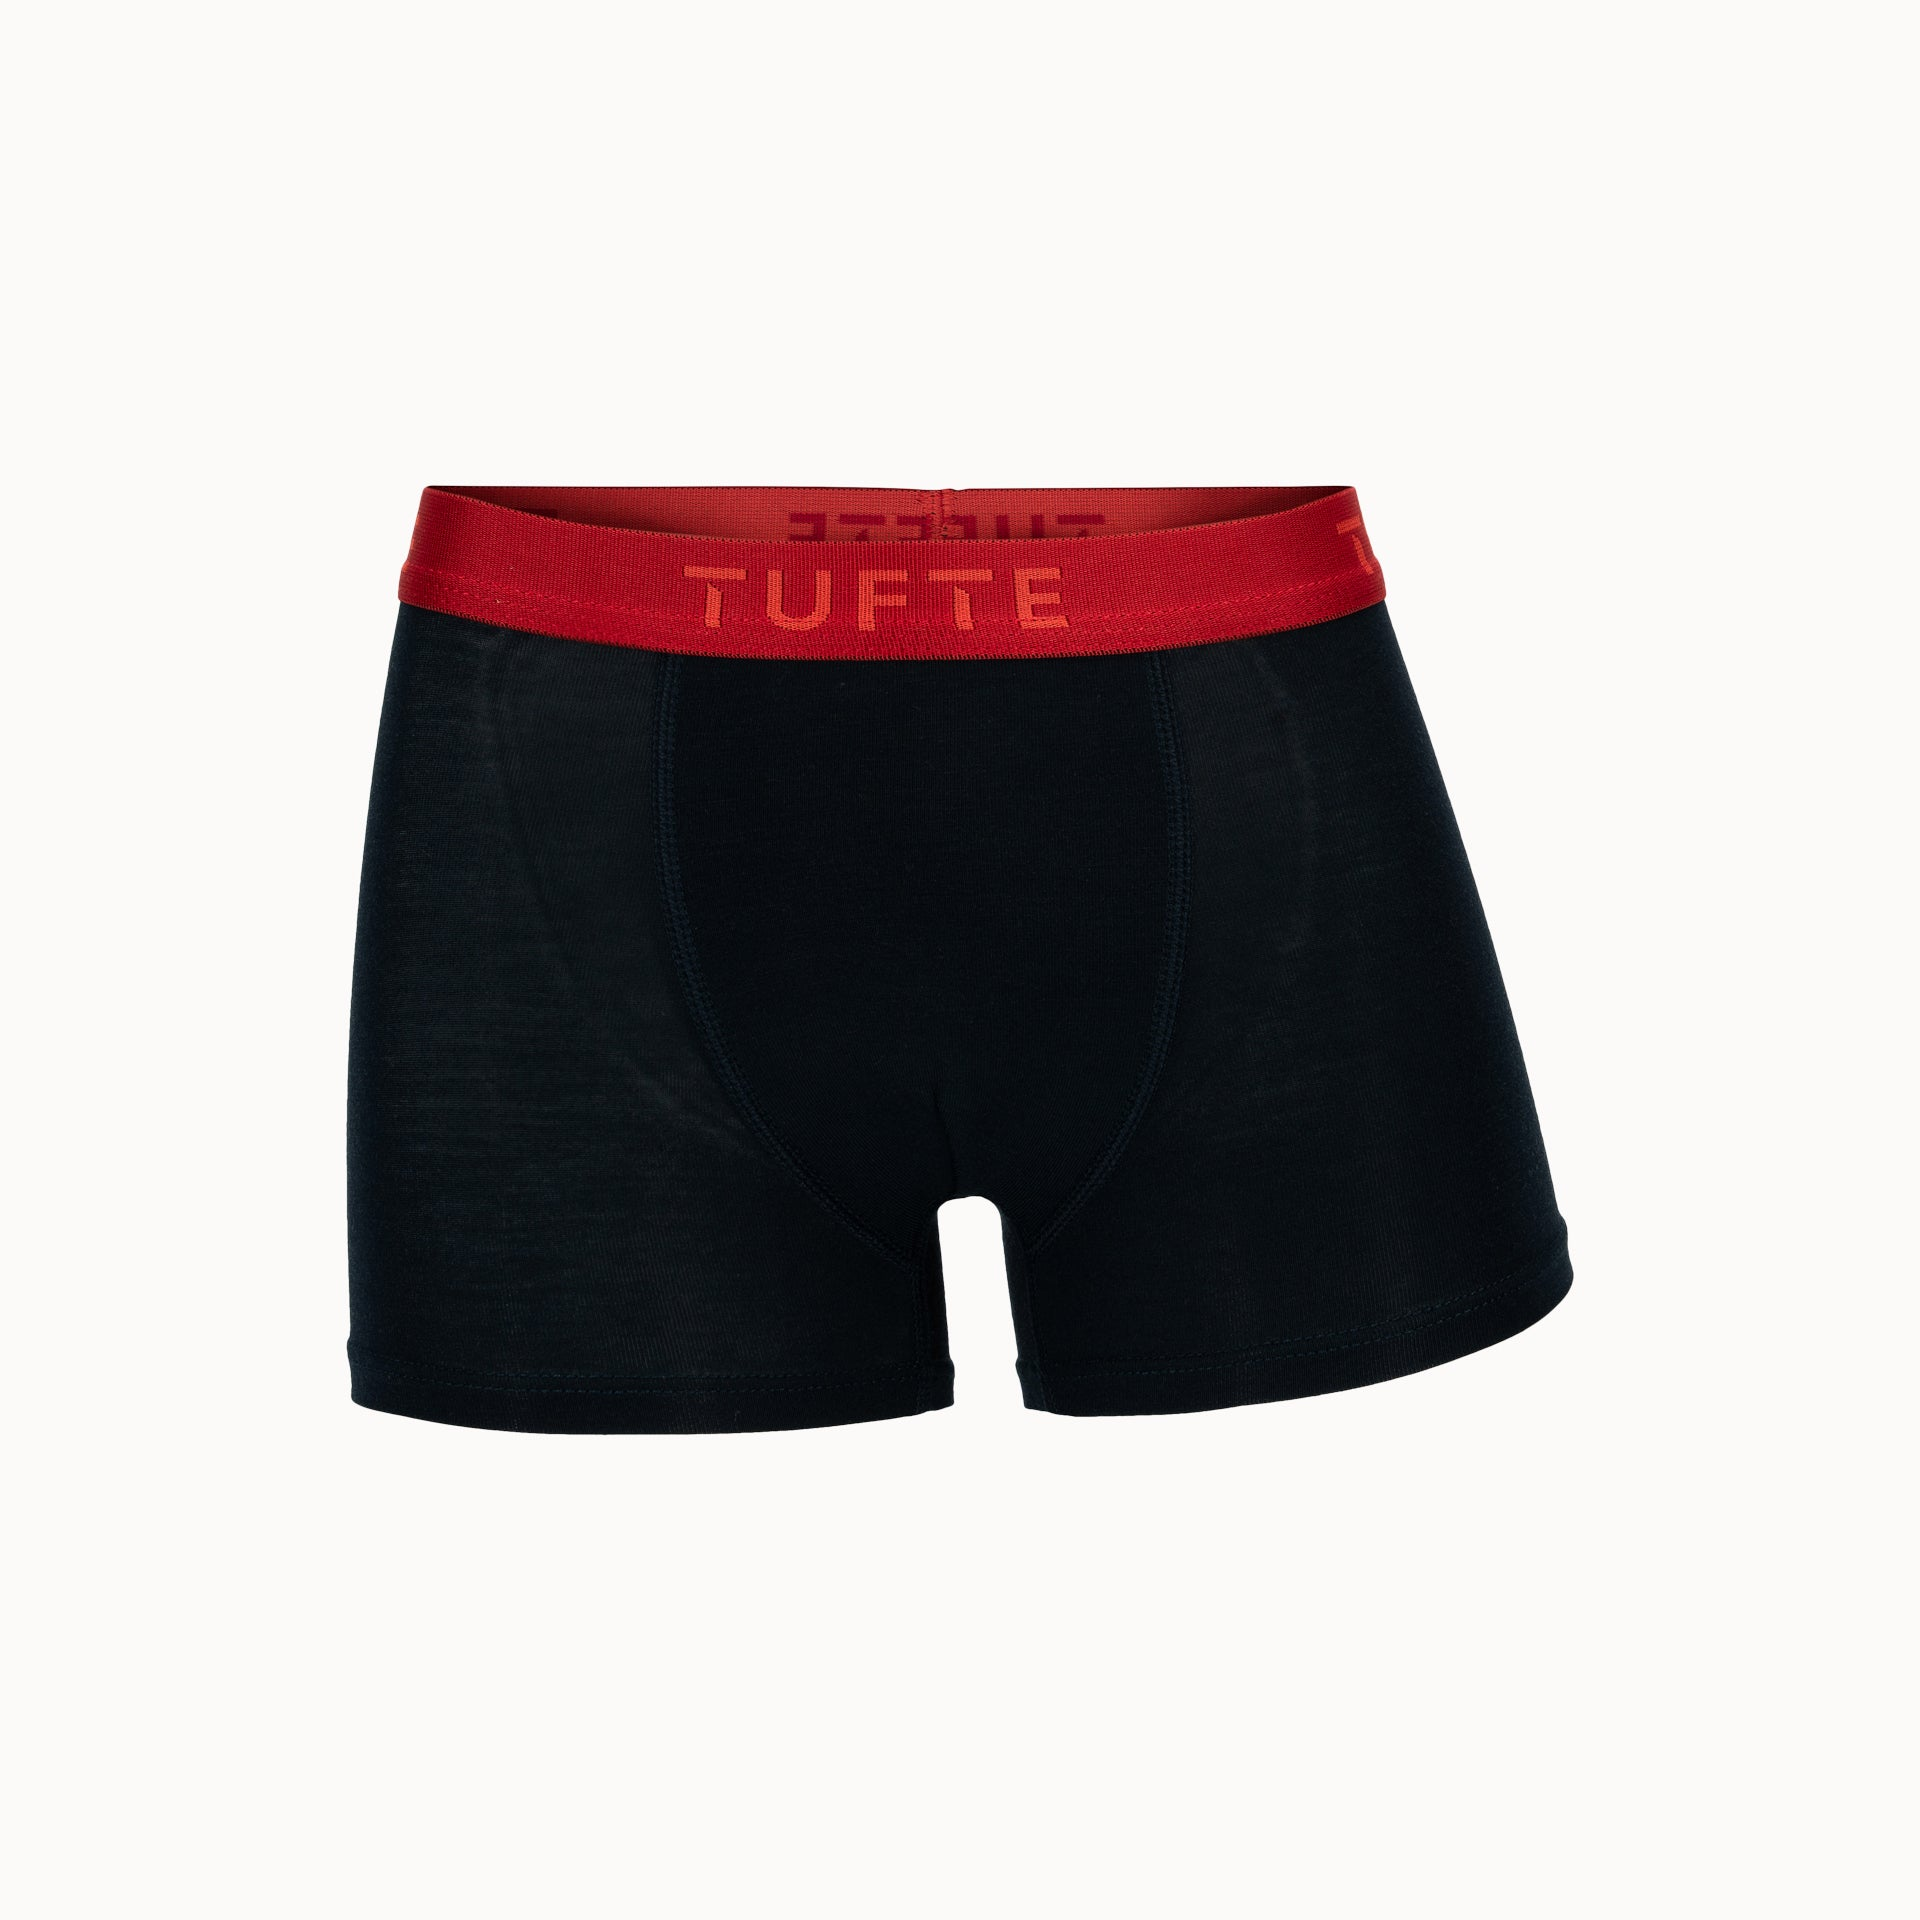 Kids Boys Boxer